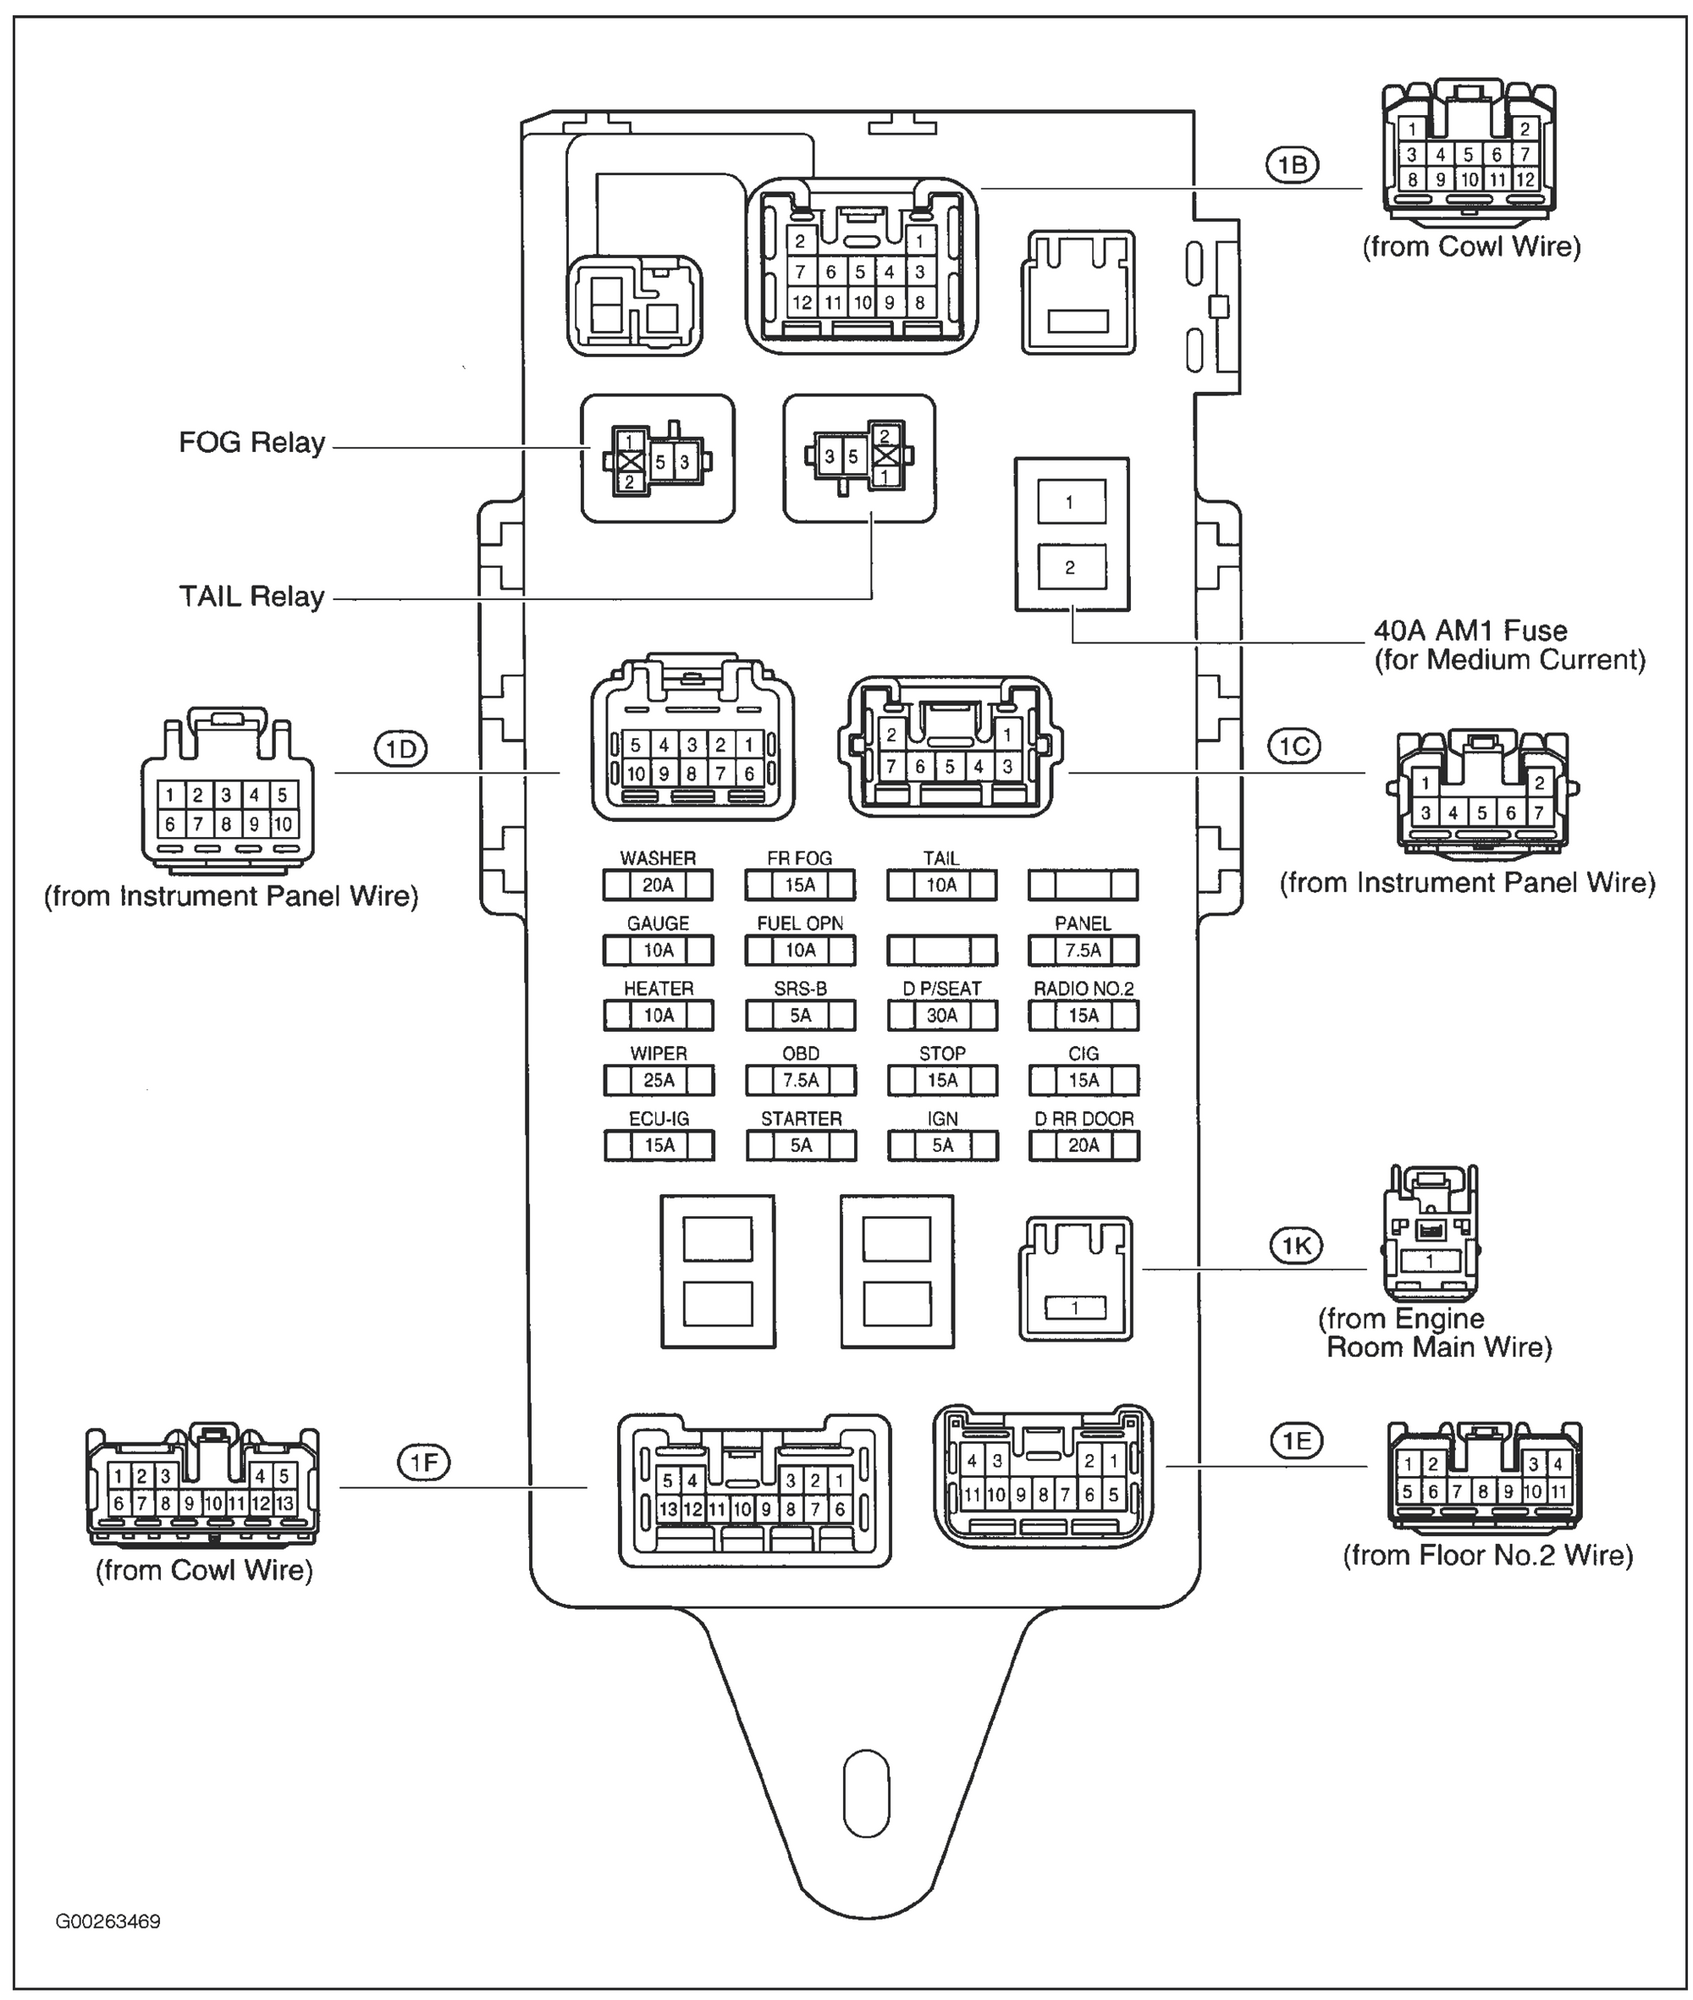 [DIAGRAM] 2000 Lexus Gs300 Radio Wiring Diagram FULL